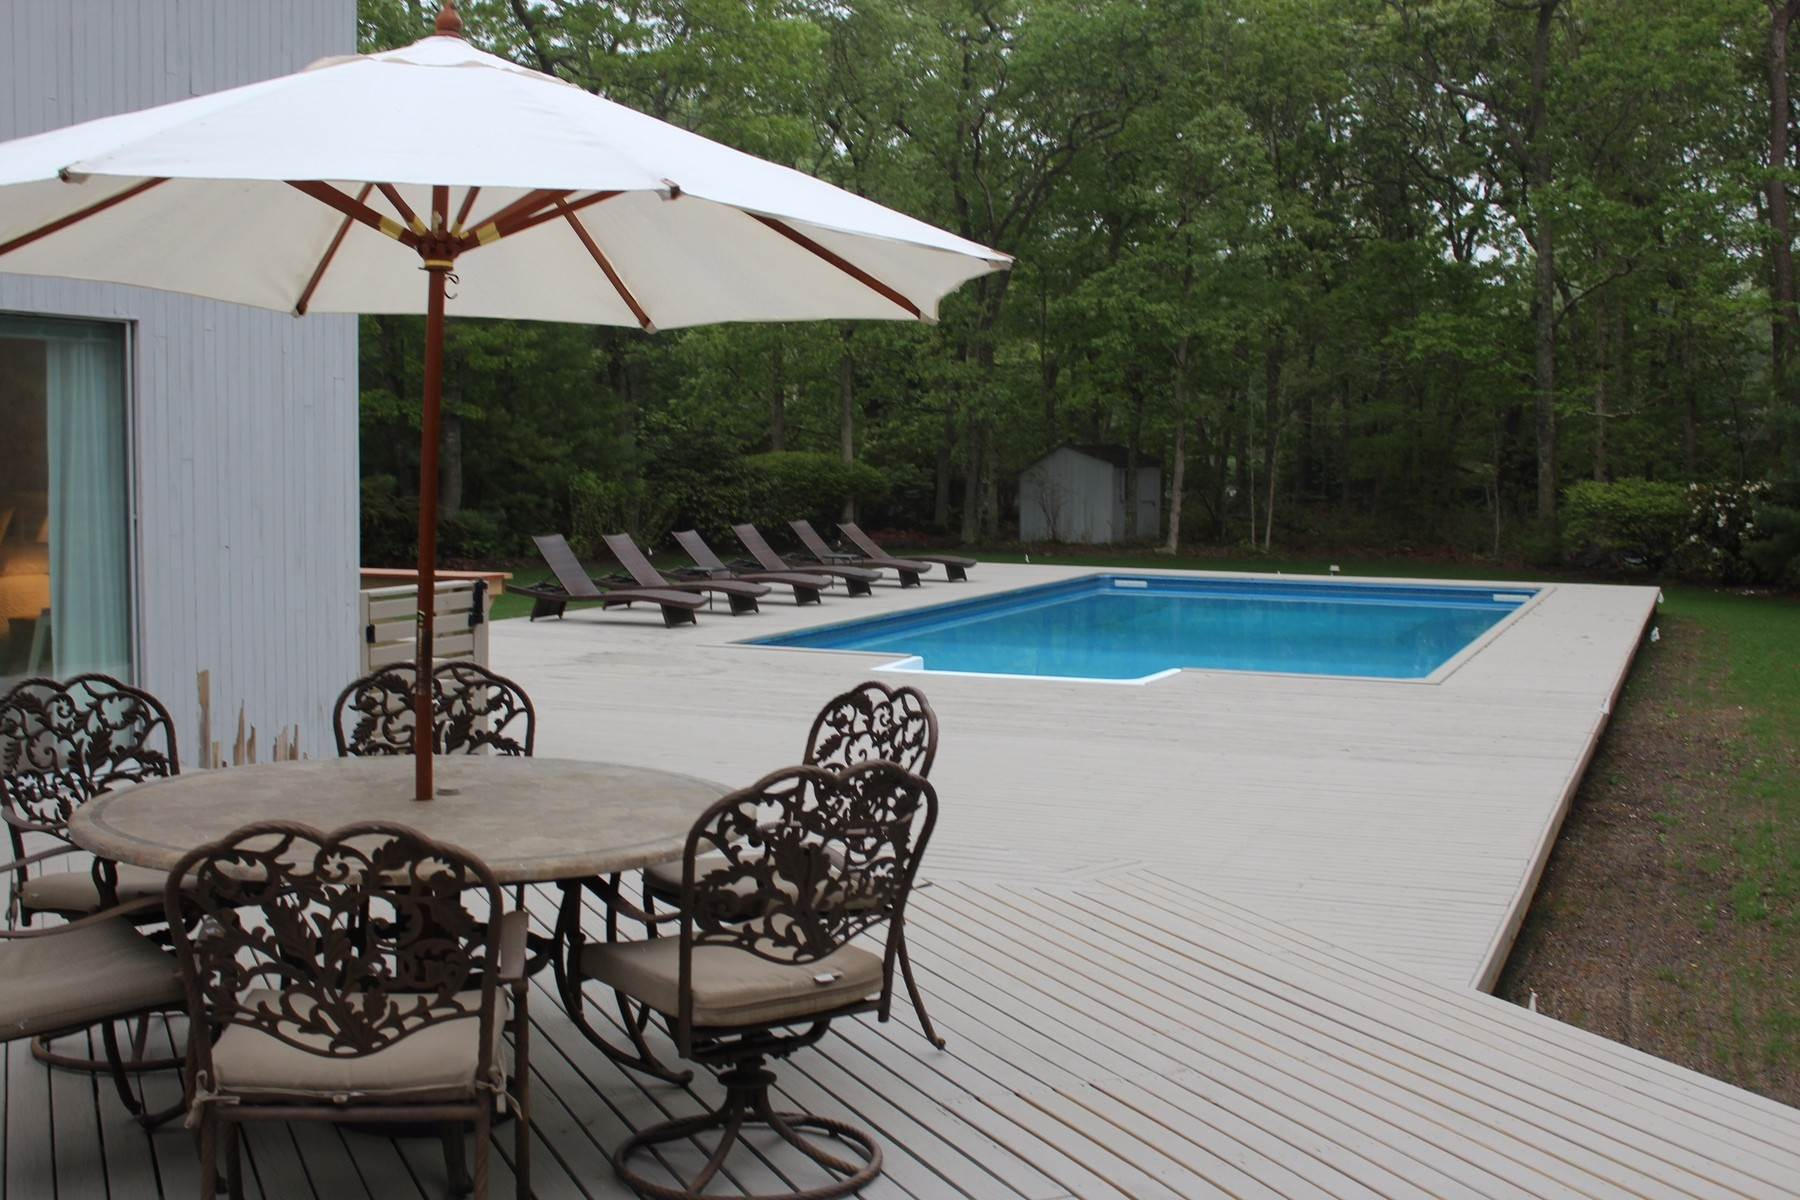 1. Single Family Home at Quogue 4 Bedroom Summer Rental With Pool Quogue Village, NY 11959